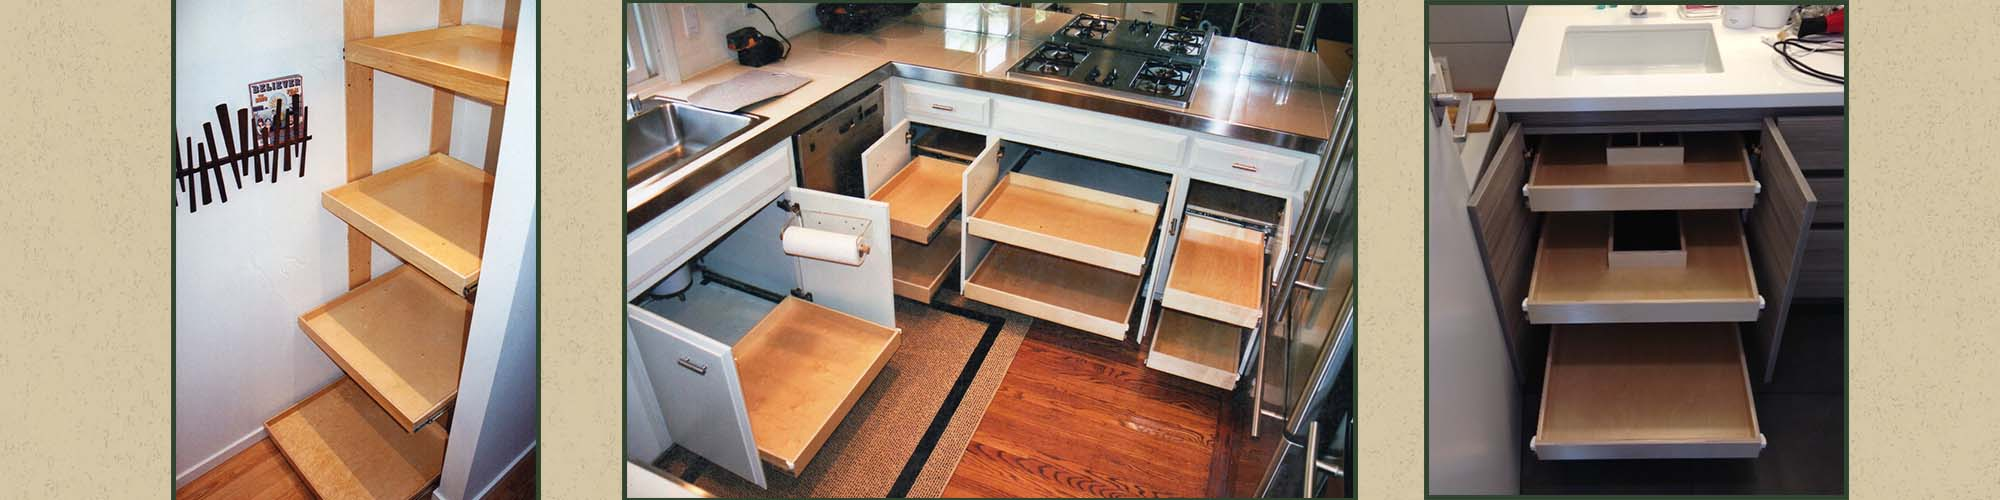 A Variety of Pull-Out Shelves | Drawer Replacement in San Francisco, CA